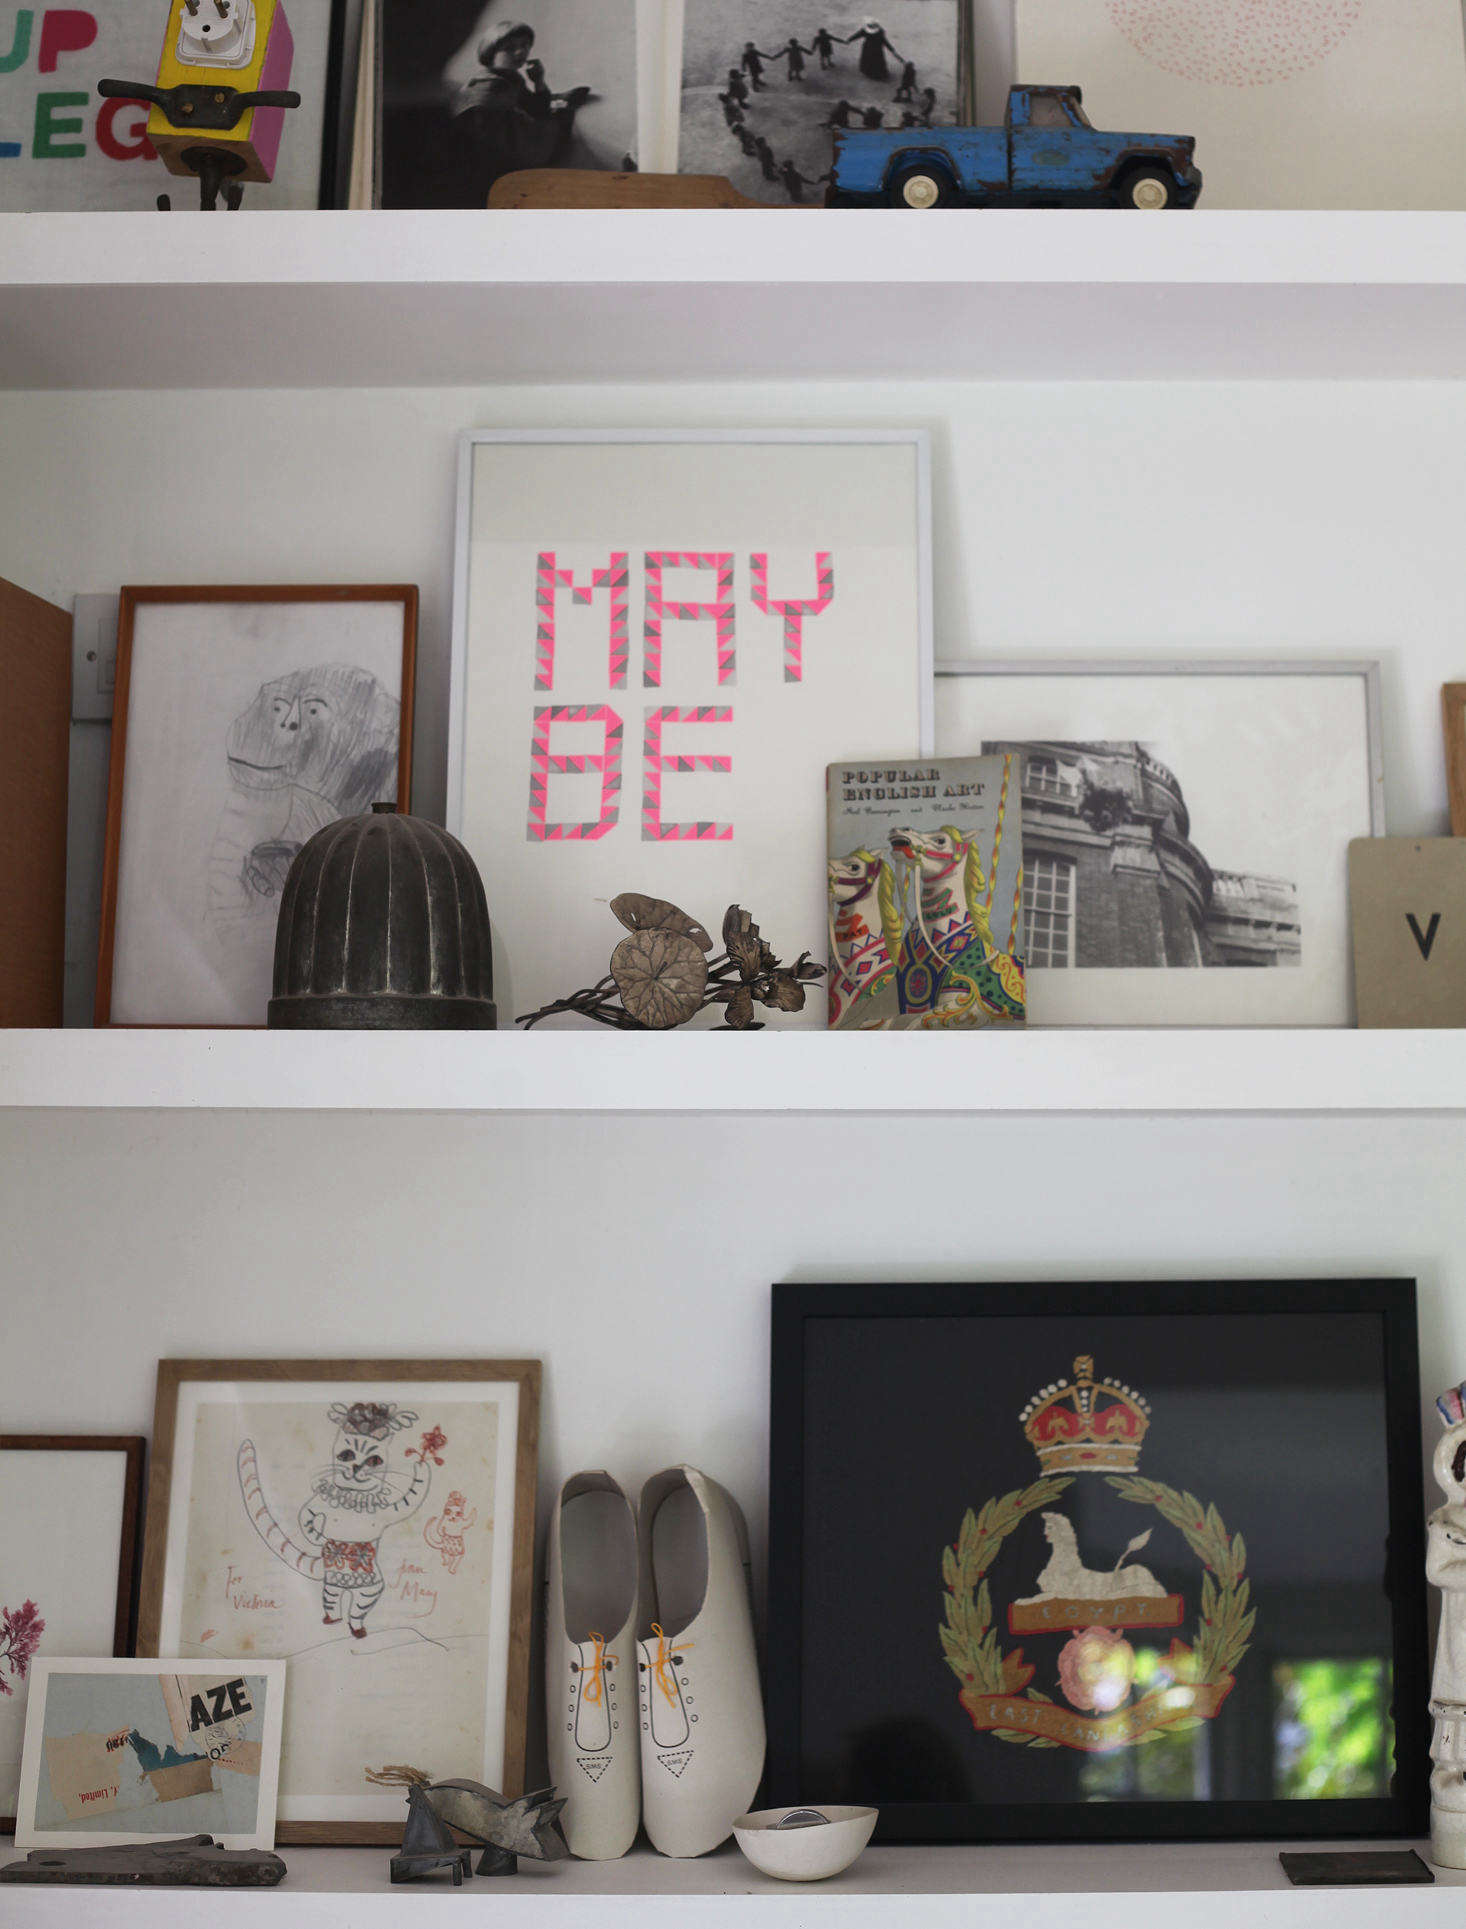 Victoria uses the sitting room bookshelves as an opportunity for display. Chinese joss paper shoes rest next to a th-century British army regiment embroidery. May Be is by illustrator Fiona Woodcock.